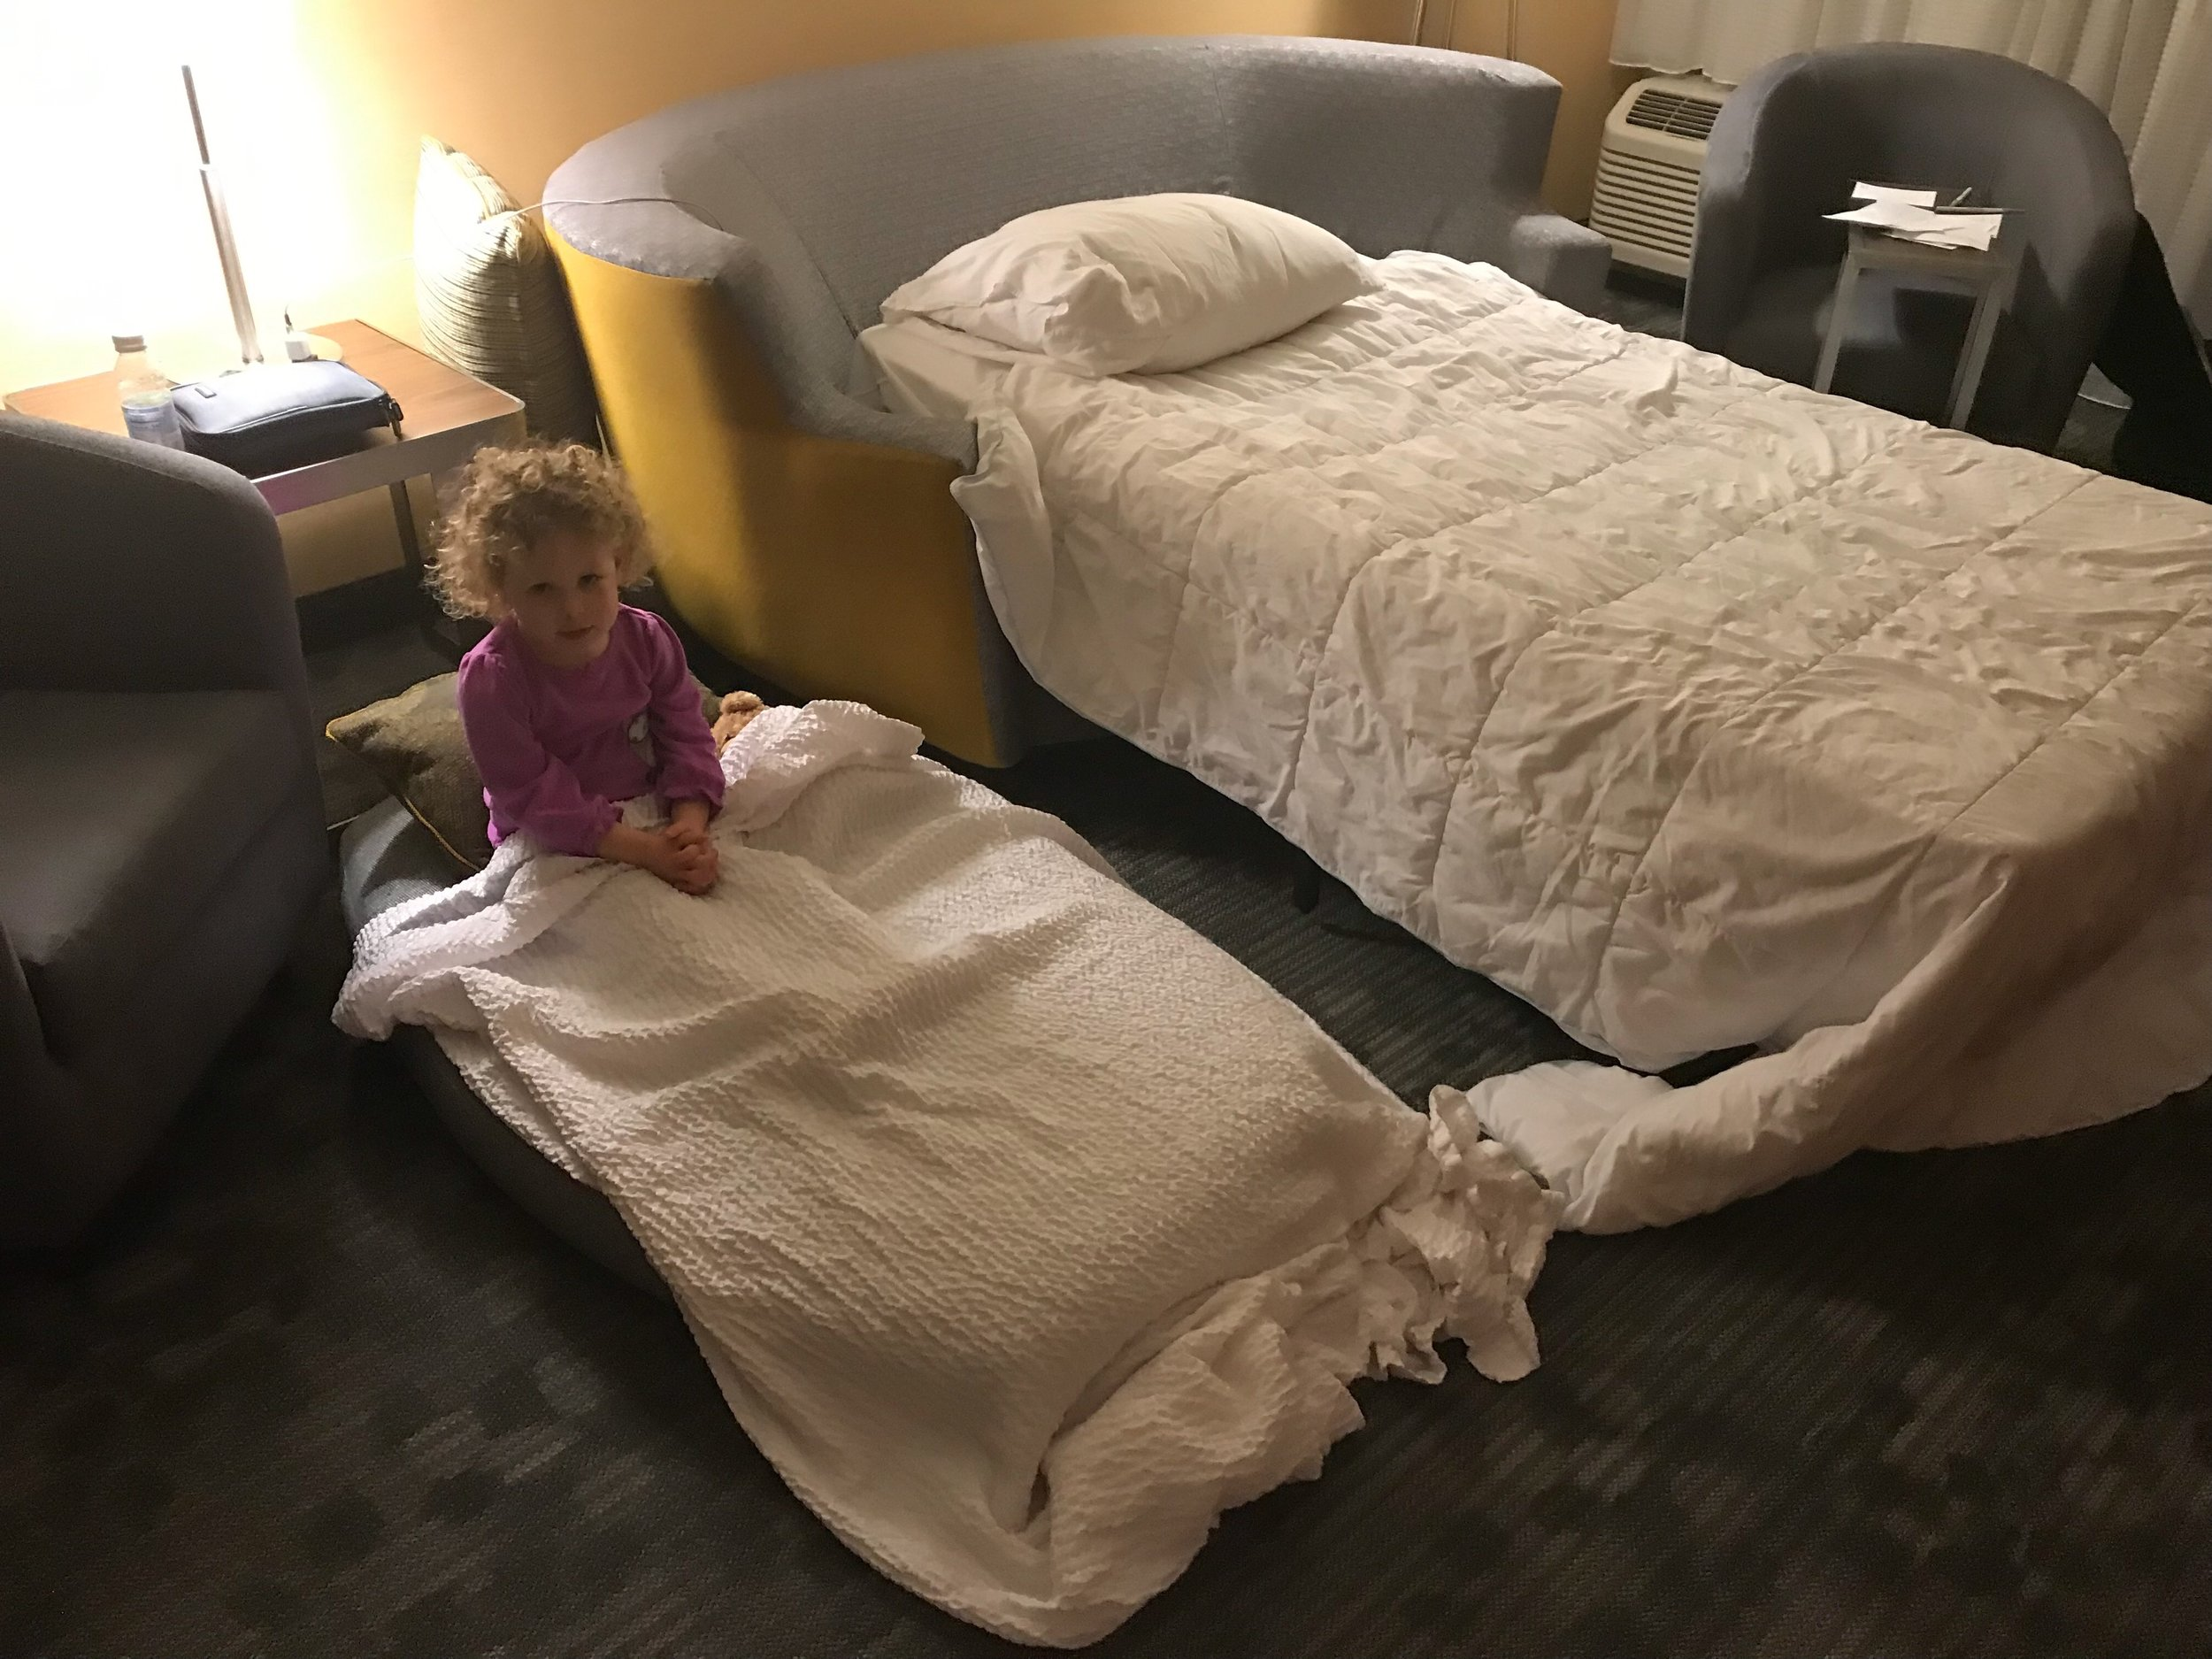 The pullout bed was only a twin, so unless you have a small guest (such as a three-year-old), don't expect to sleep four people in the room.